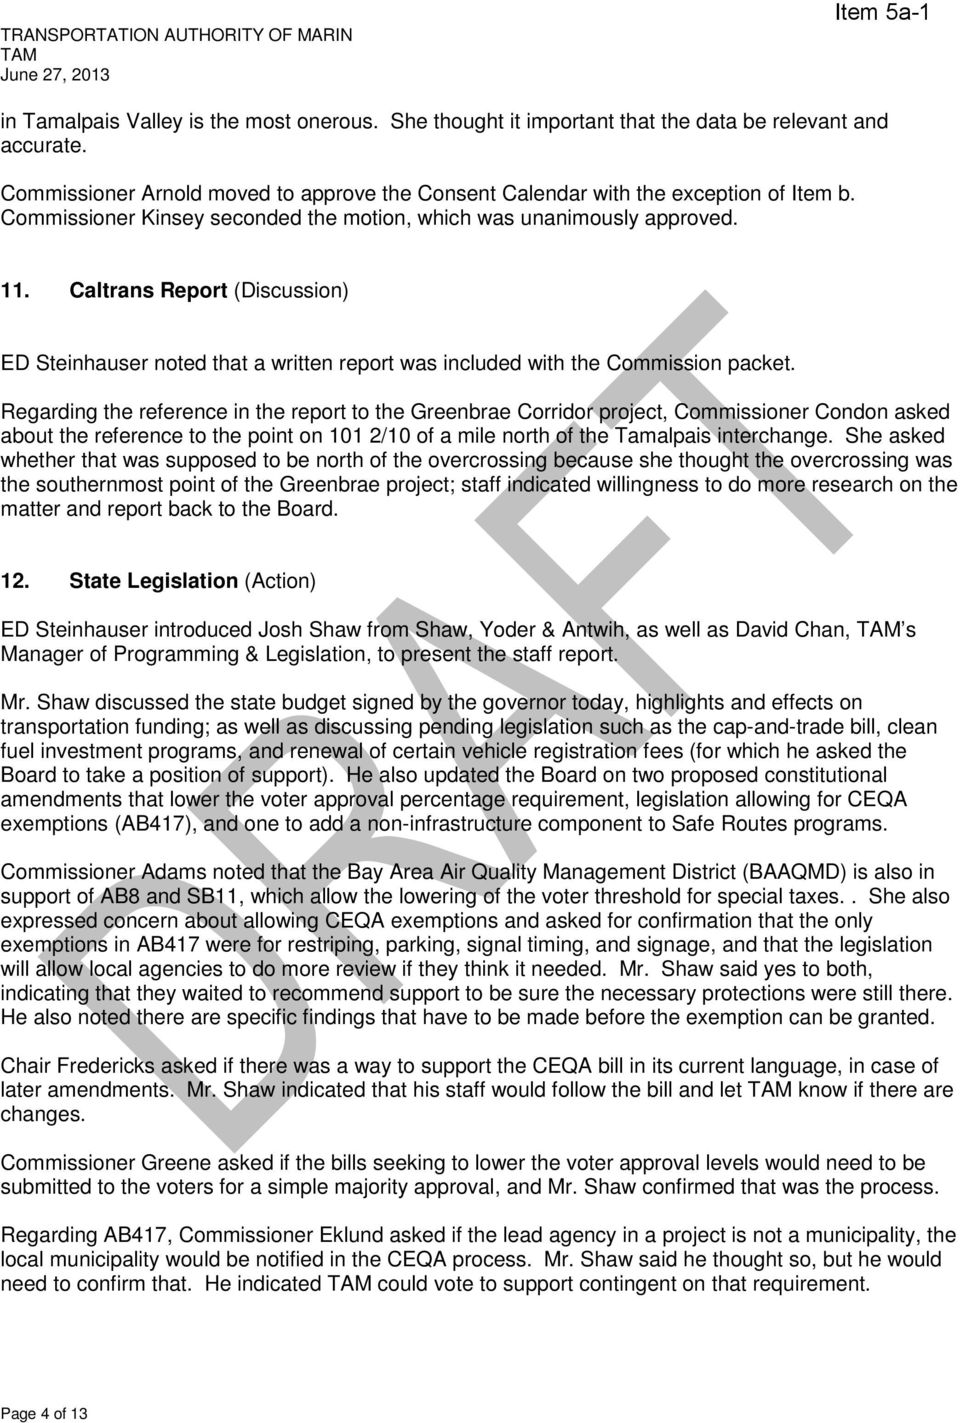 Caltrans Report (Discussion) ED Steinhauser noted that a written report was included with the Commission packet.